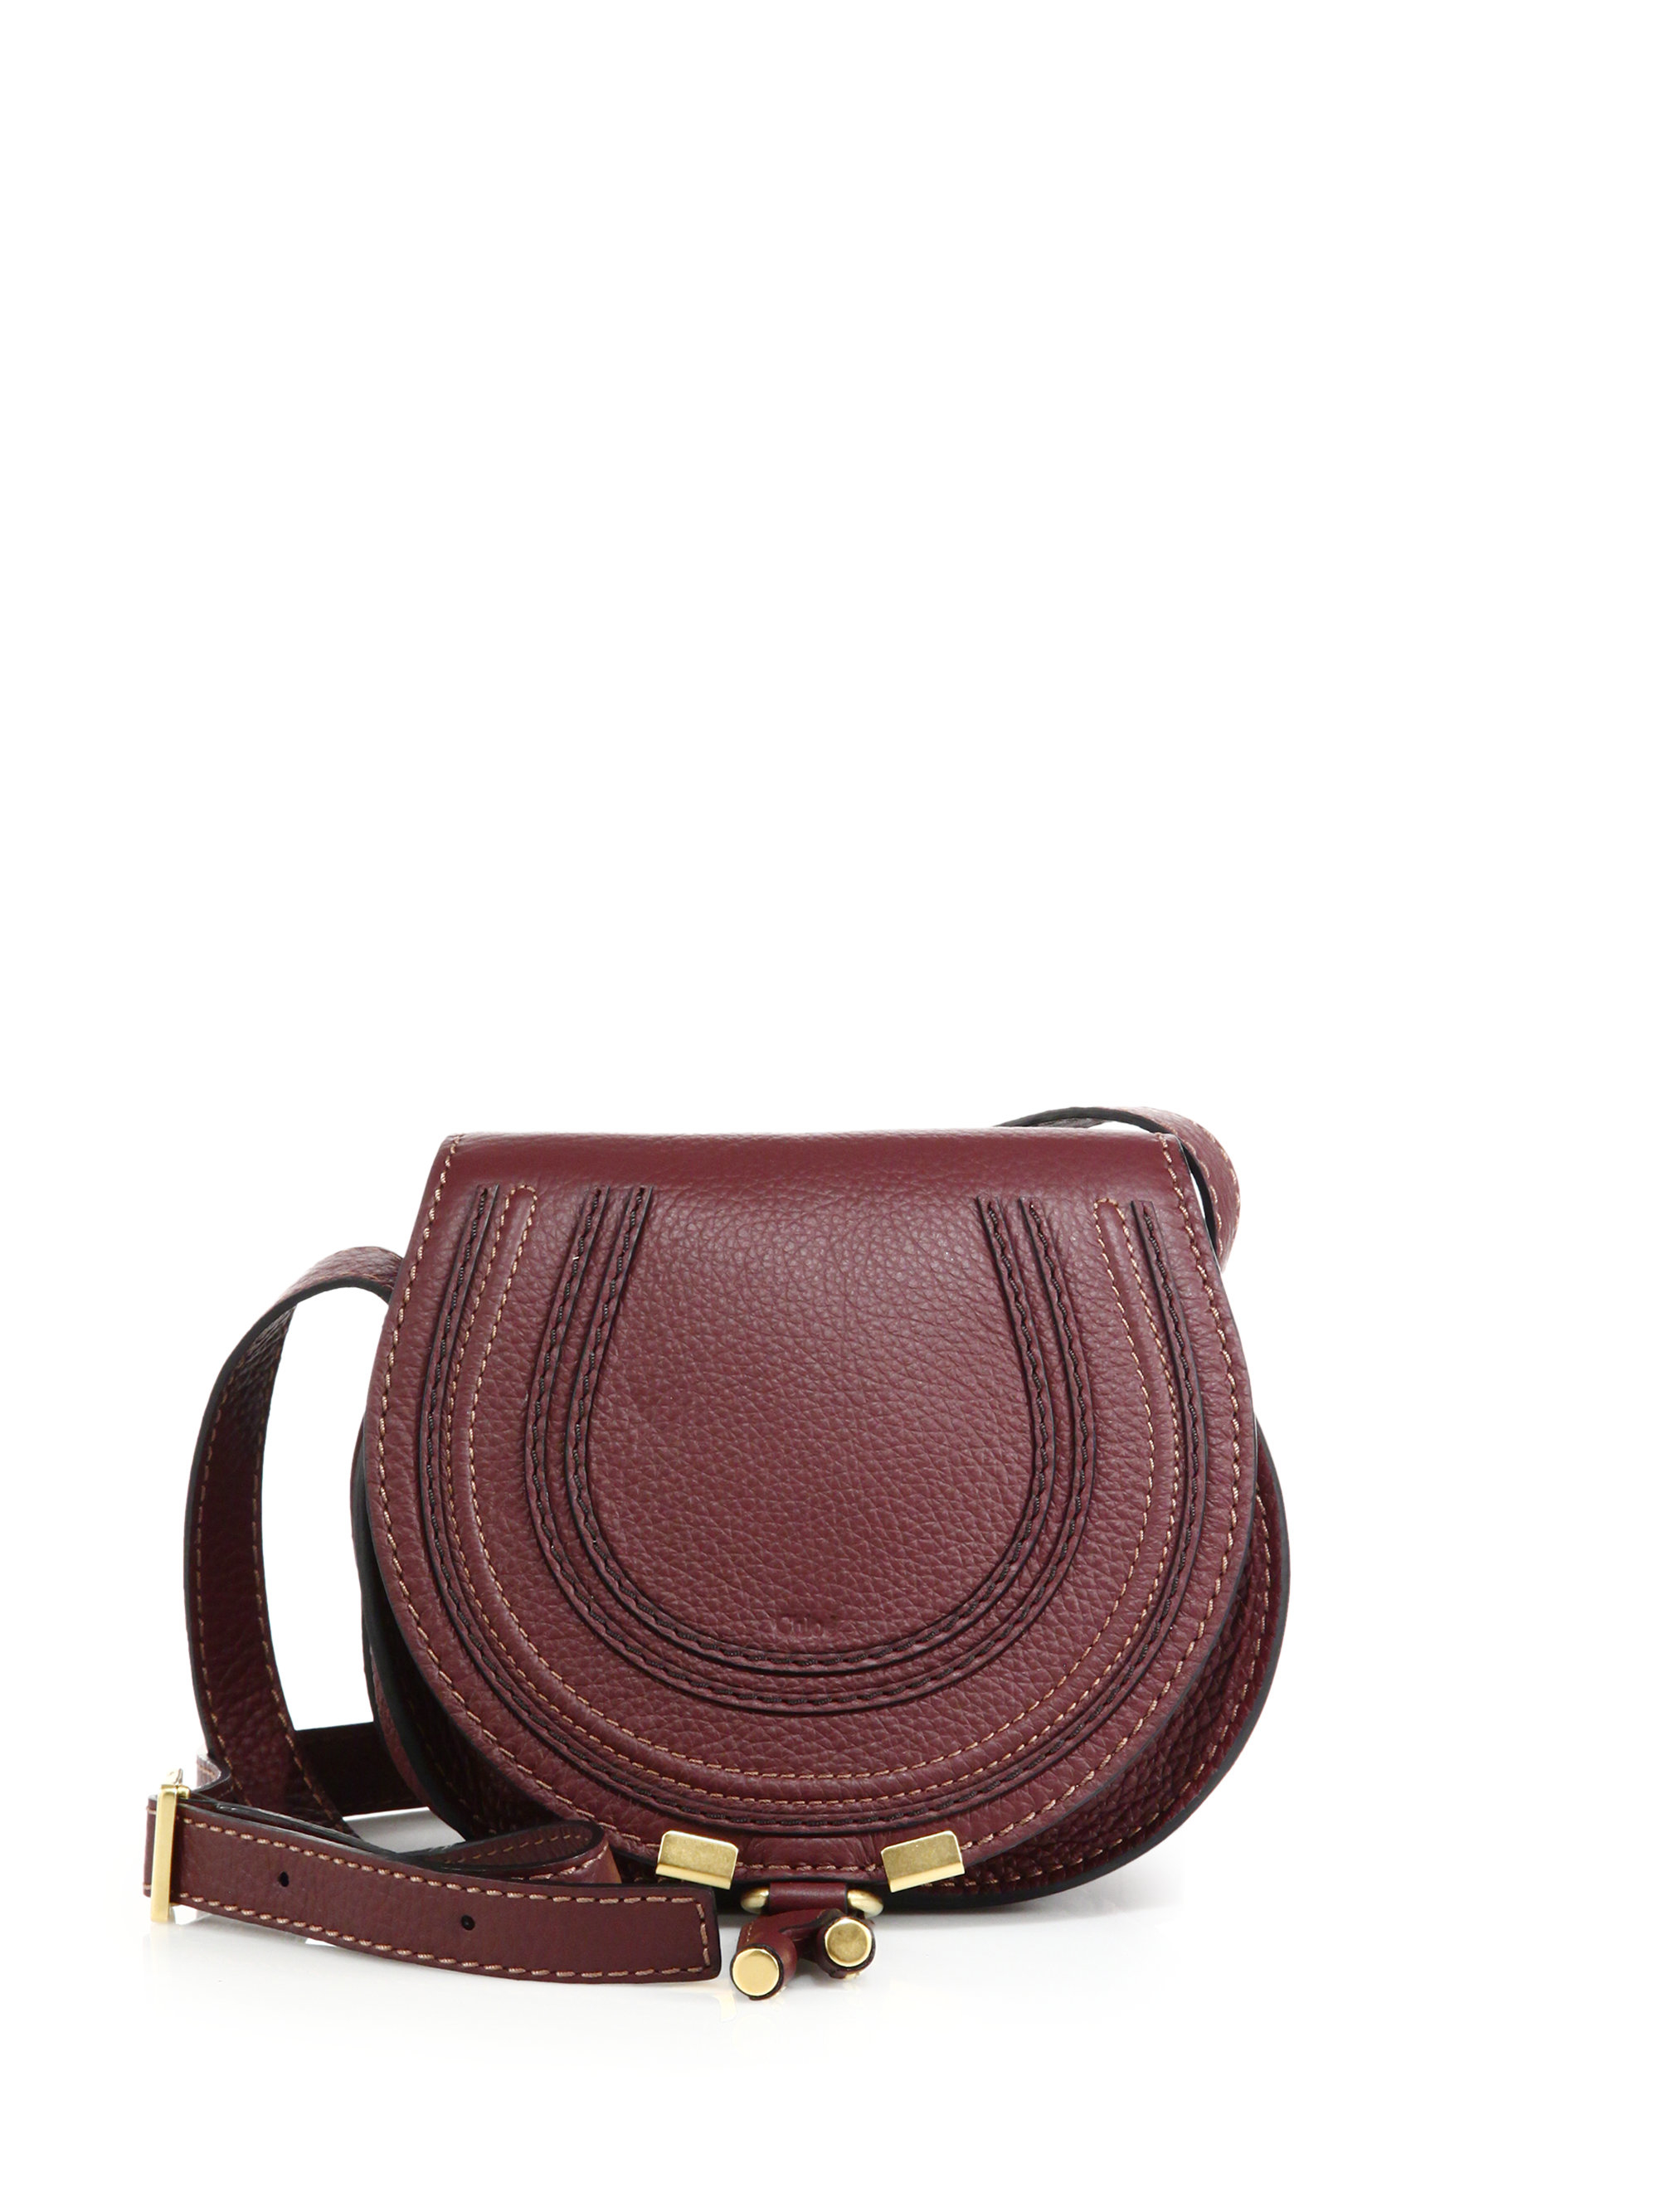 chlo marcie small leather saddle bag in red lyst. Black Bedroom Furniture Sets. Home Design Ideas